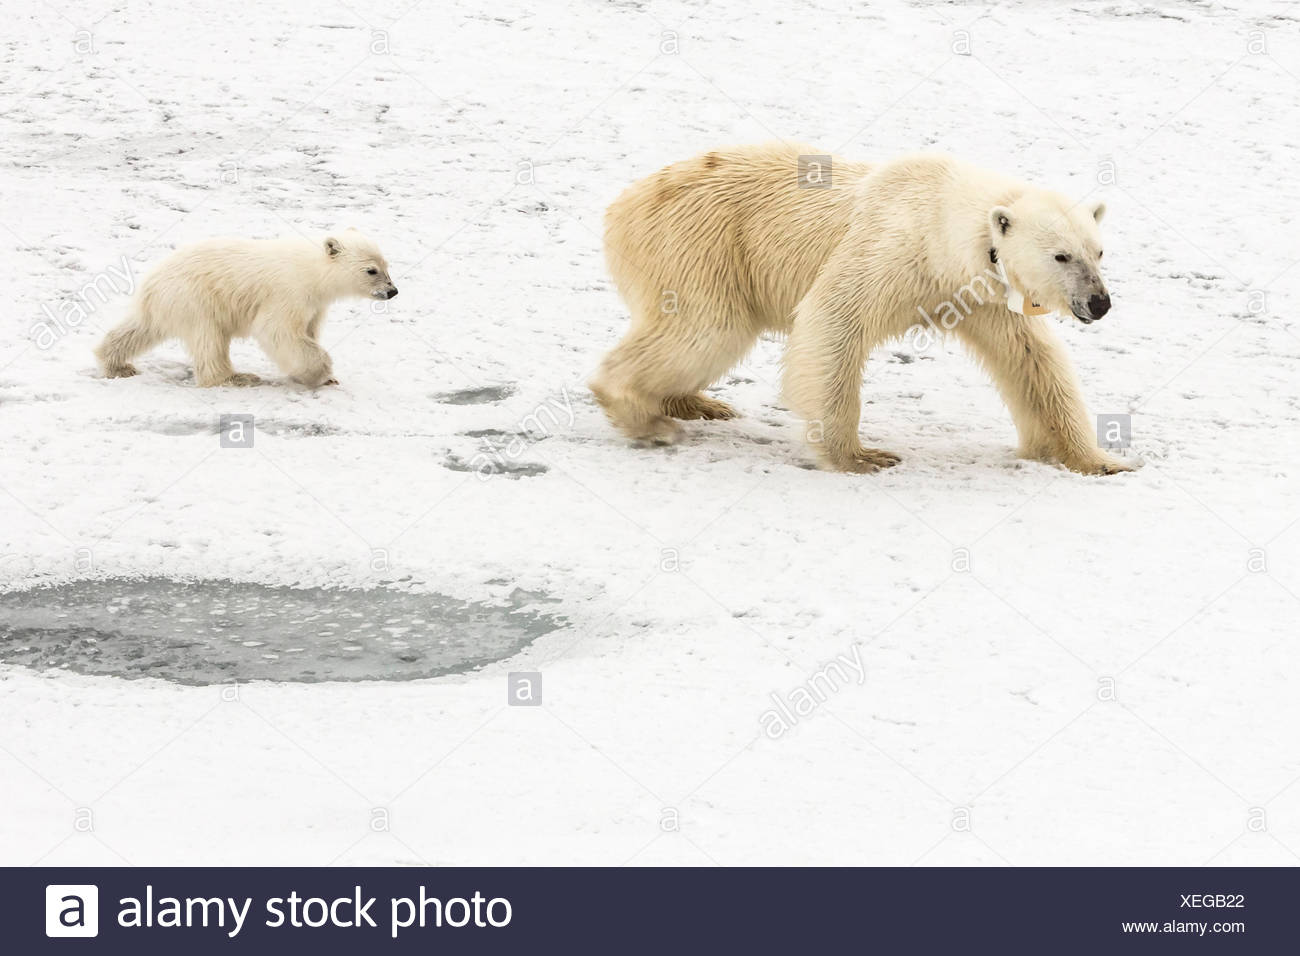 A polar bear, Ursus maritimus, and her cub. The mother bear wears a radio tracking collar. - Stock Image